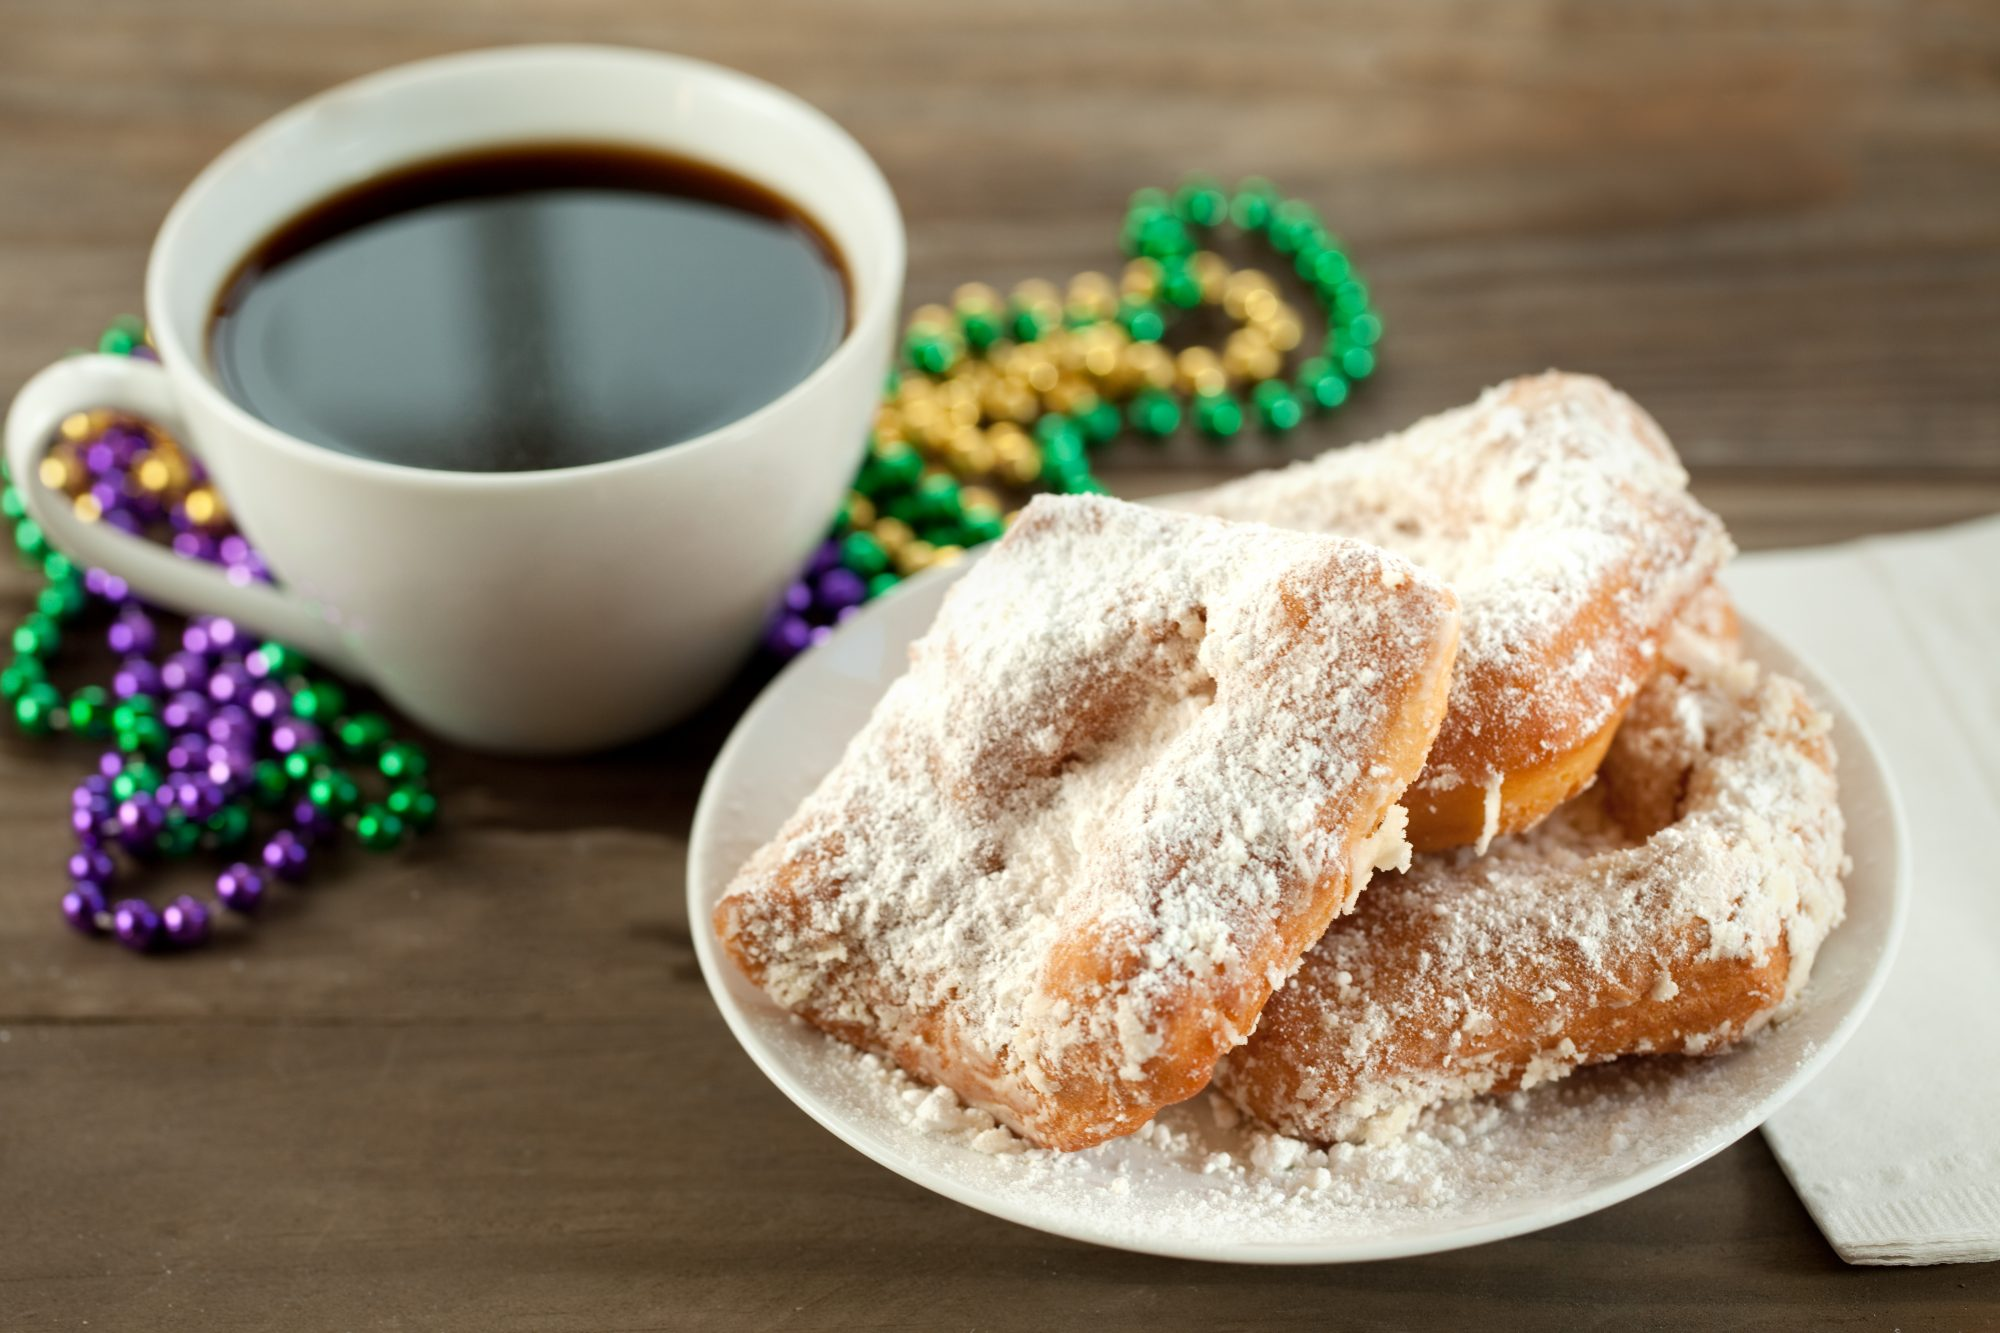 Beignet with coffee and beads Getty 7/7/20